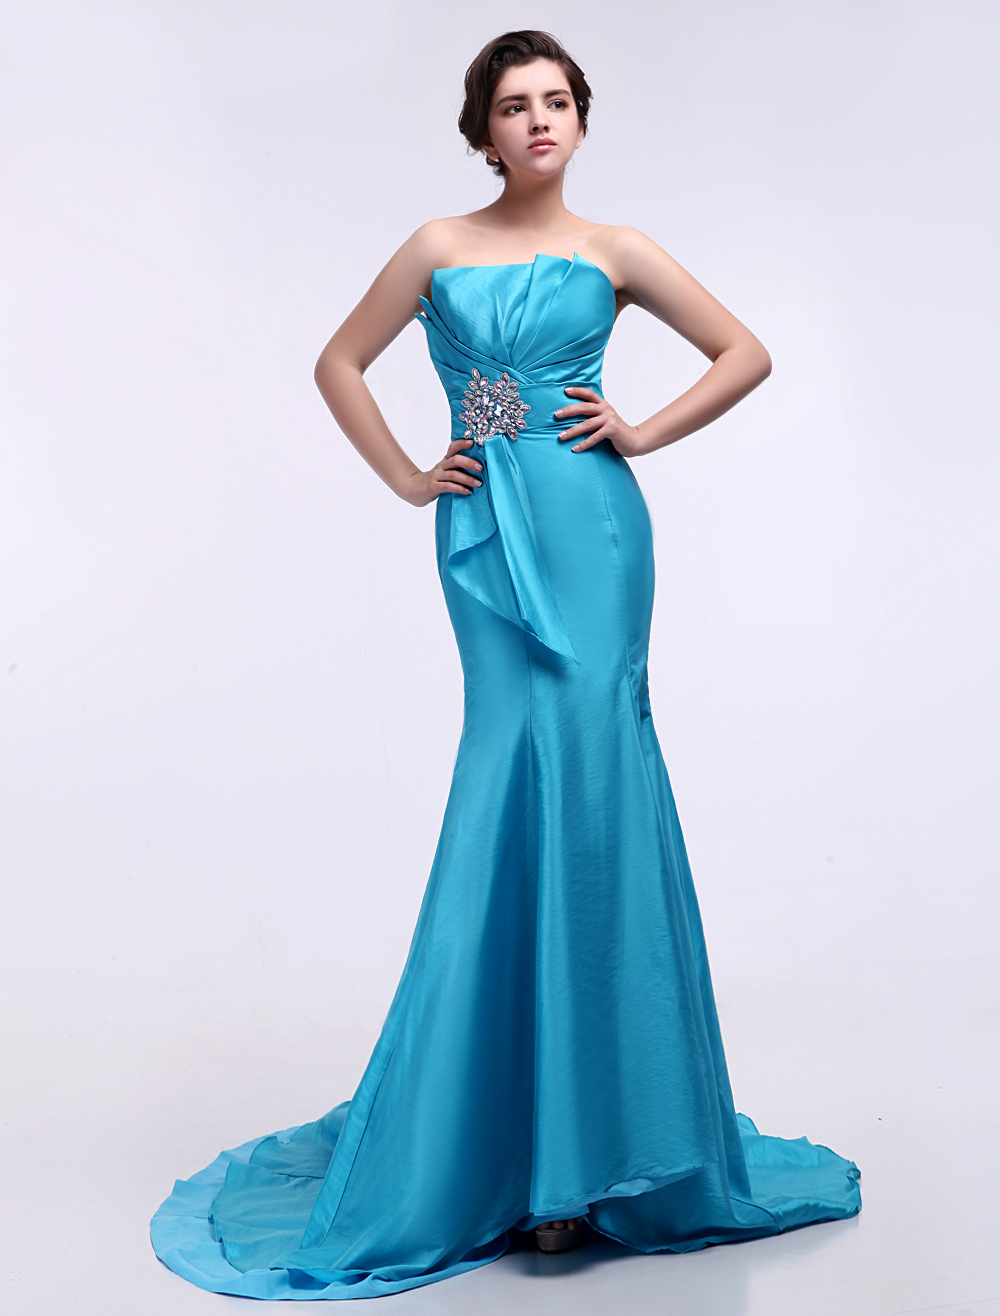 Mermaid Evening Dress Teal Strapless Rhinestone Party Dress With Court Train